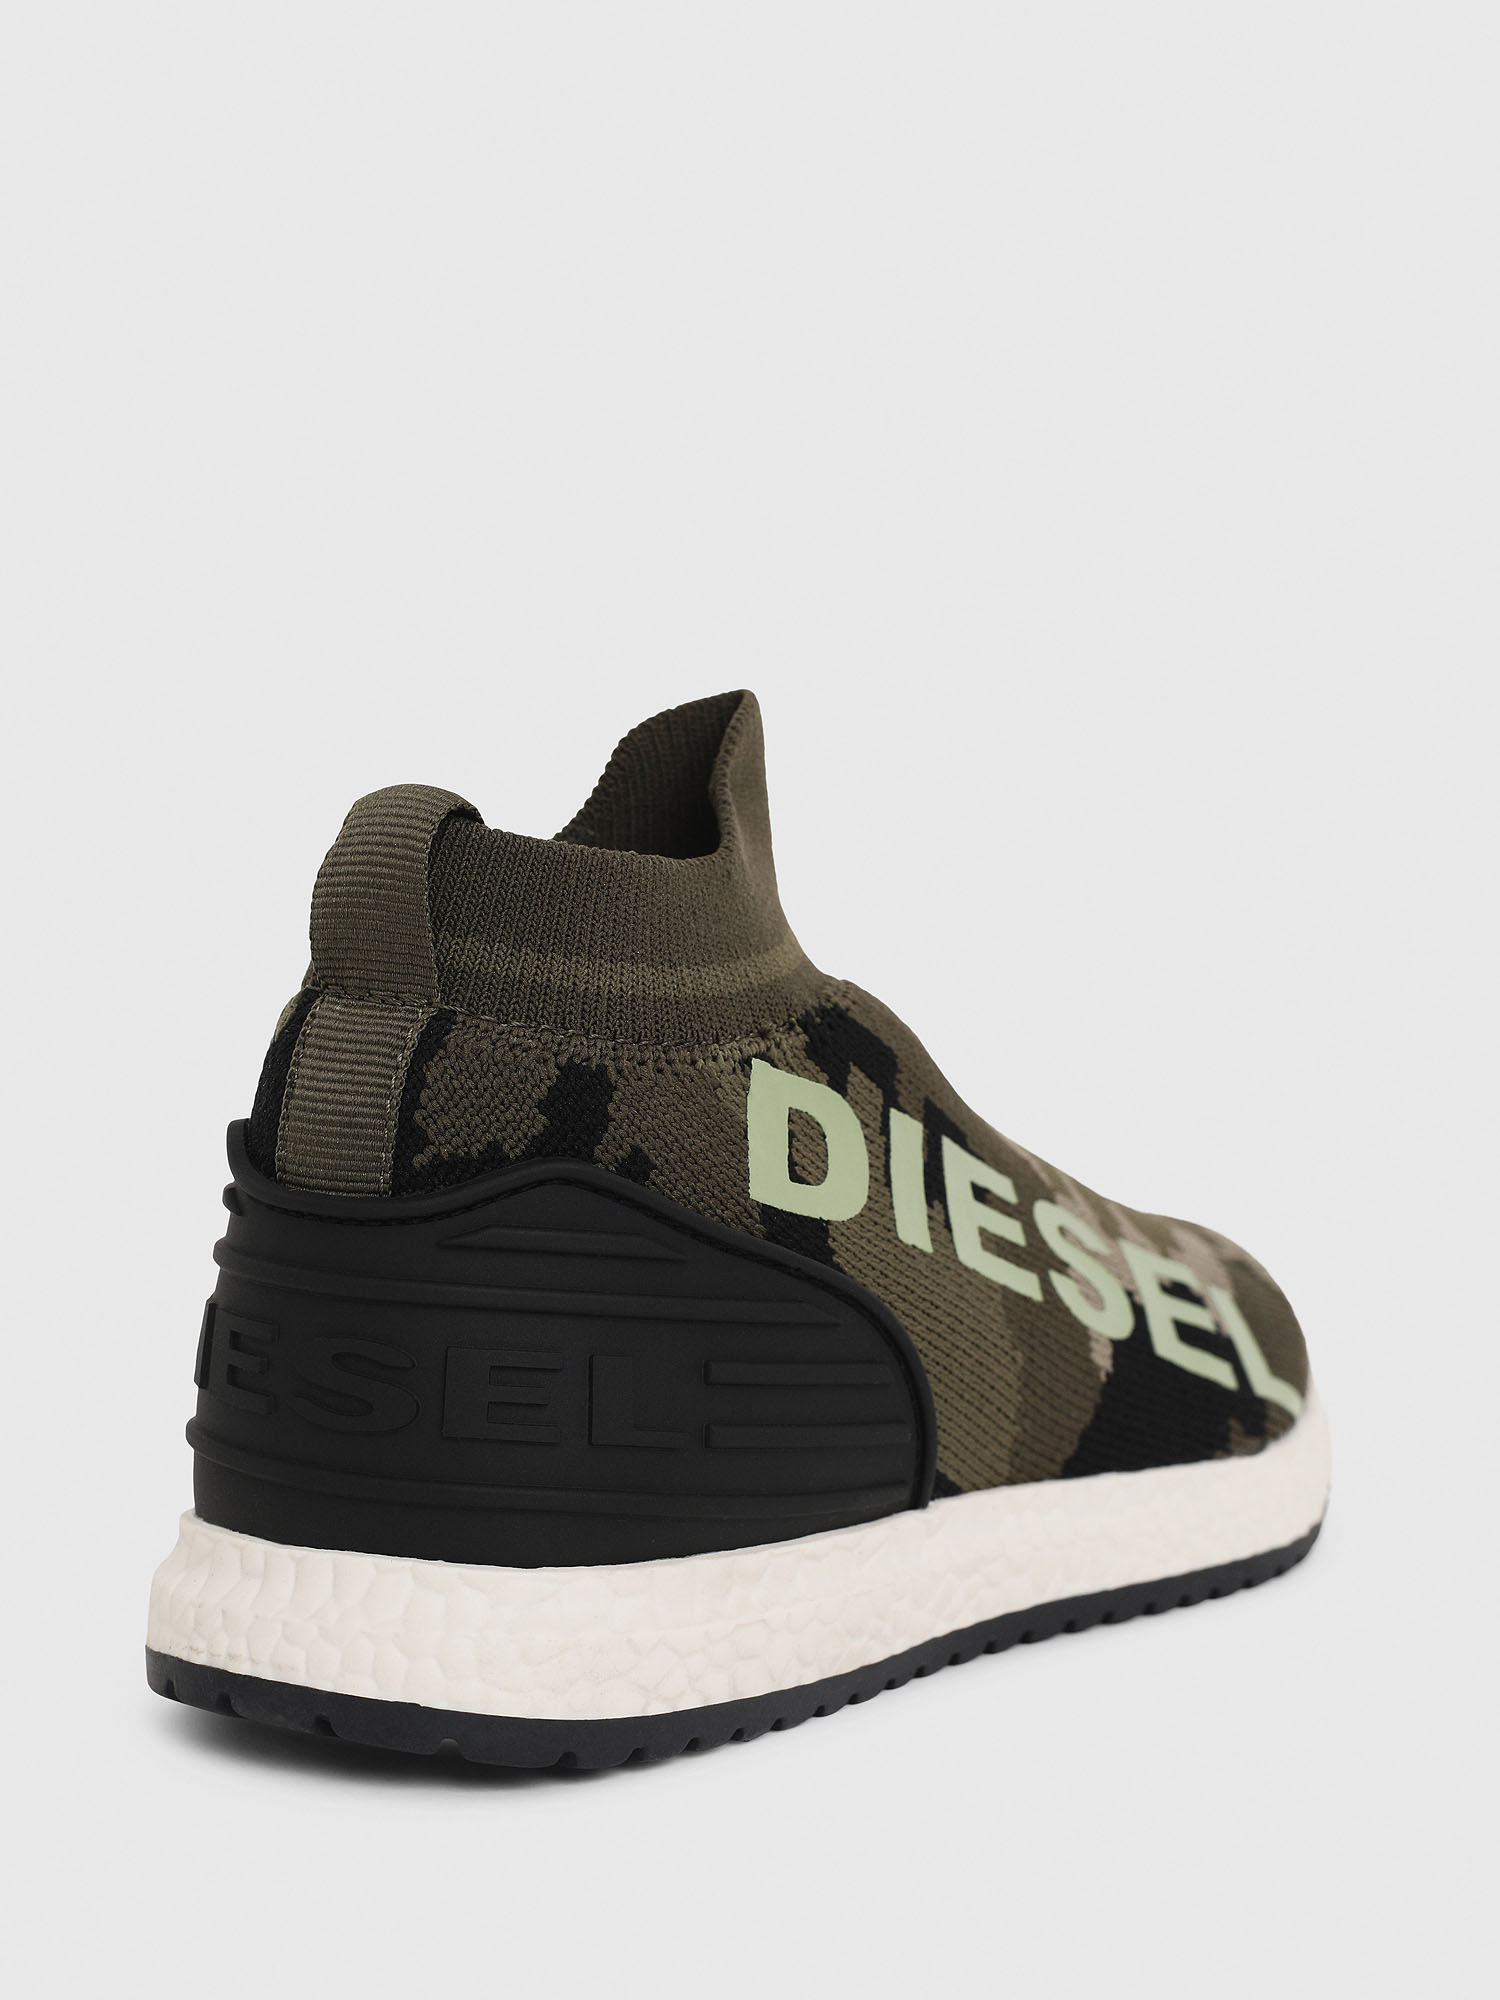 Diesel - SLIP ON 03 LOW SOCK,  - Scarpe - Image 4